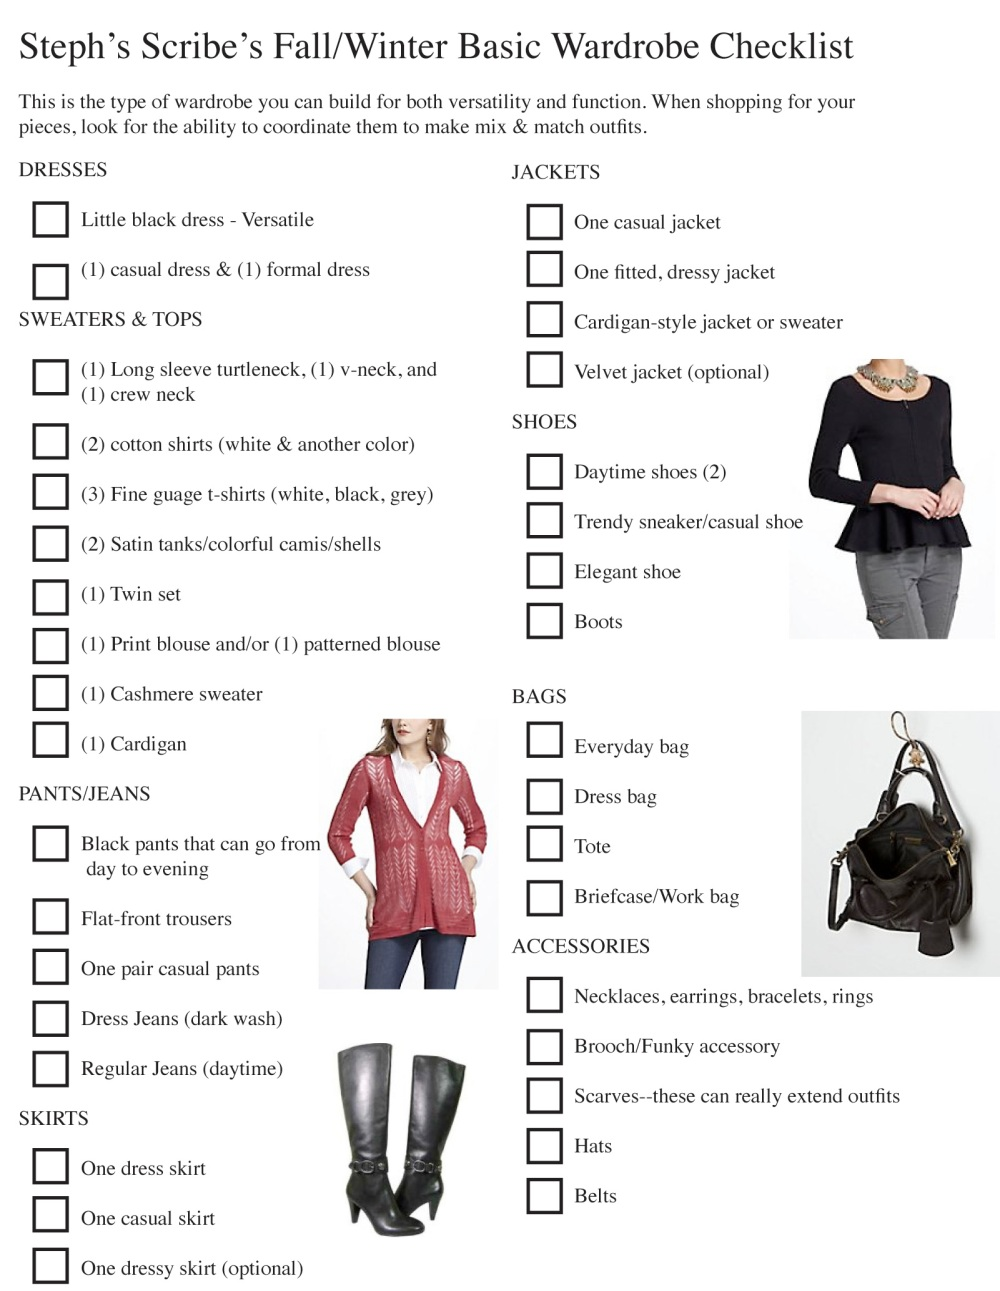 Fall Wardrobe Checklist Steph's Scribe.indd